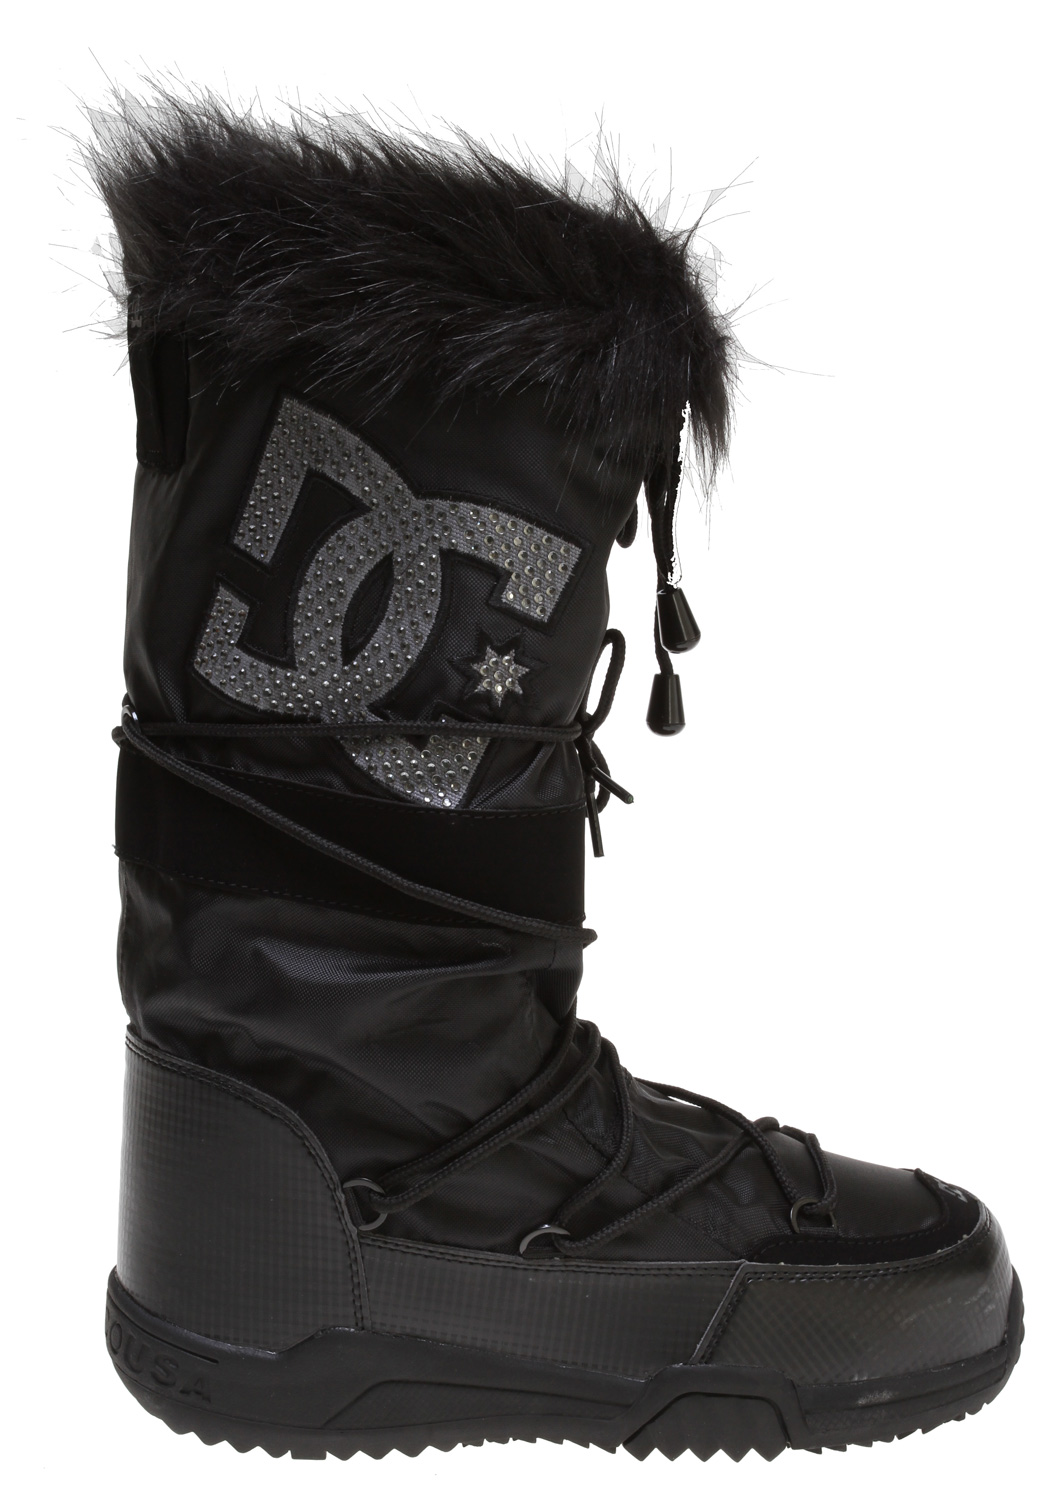 "Key Features of the DC Chalet 2.0 LE Boots Black/Anthracite: Soft Resilient Action Leather Textile Upper Water Resistant Materials Foam-Padded Tongue and Collar DC's Performance Wrap Cup Sole Abrasion-Resistant Sticky Rubber Outsole with DC's Trademarked ""Pill"" Pattern - $54.95"